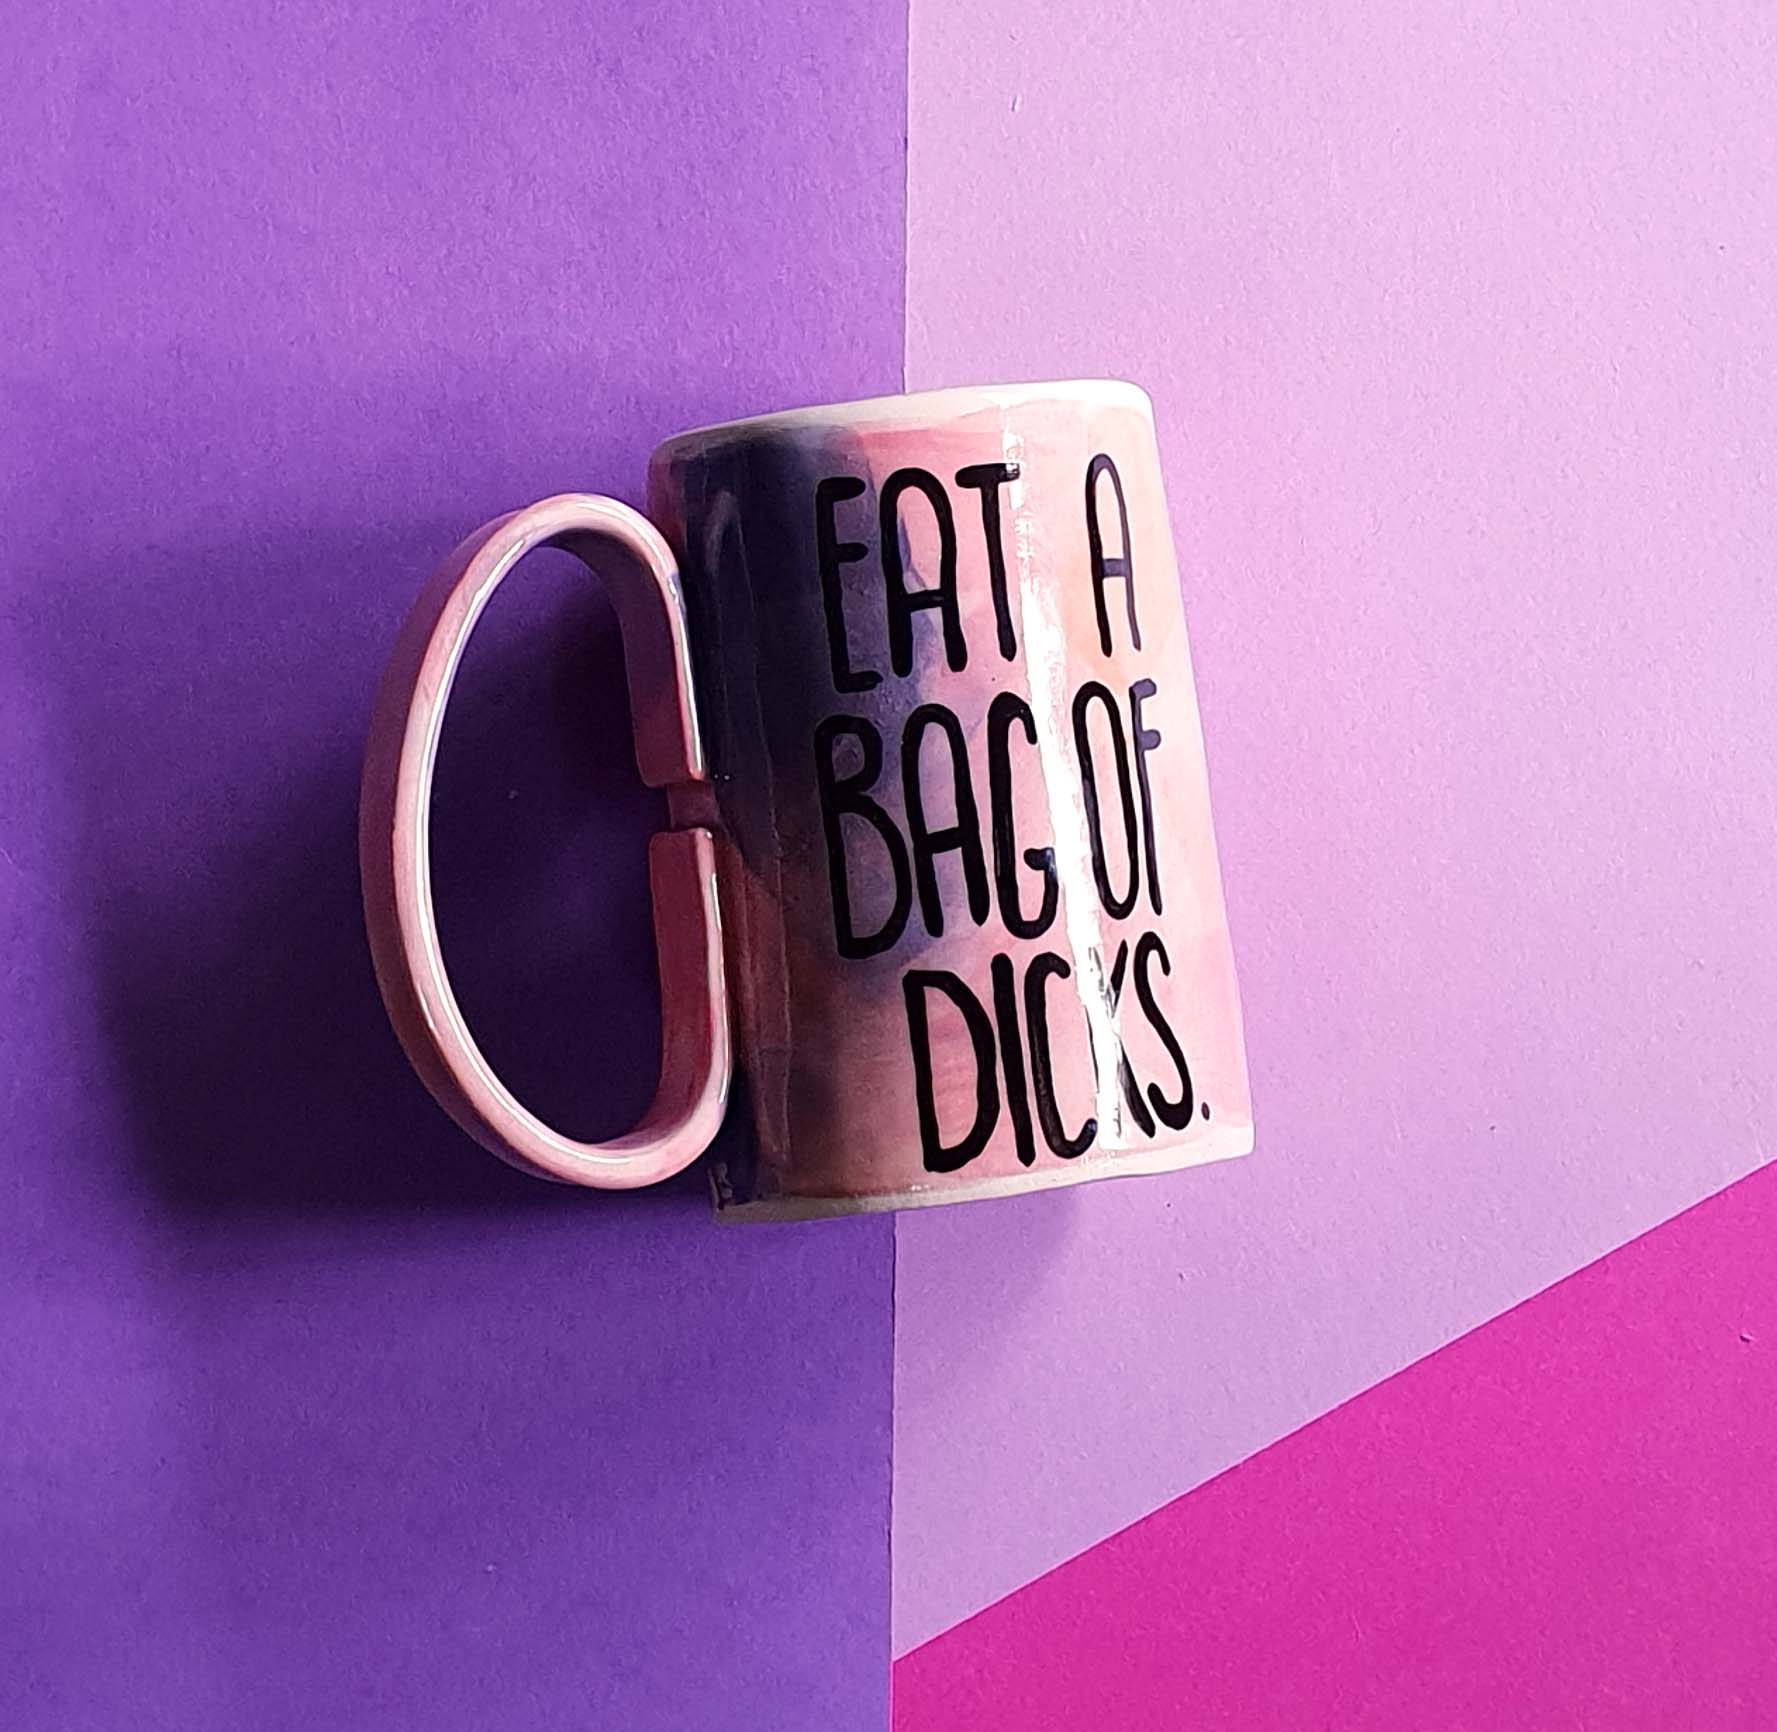 Eat a bag of d@#ks mug - Orange/pink